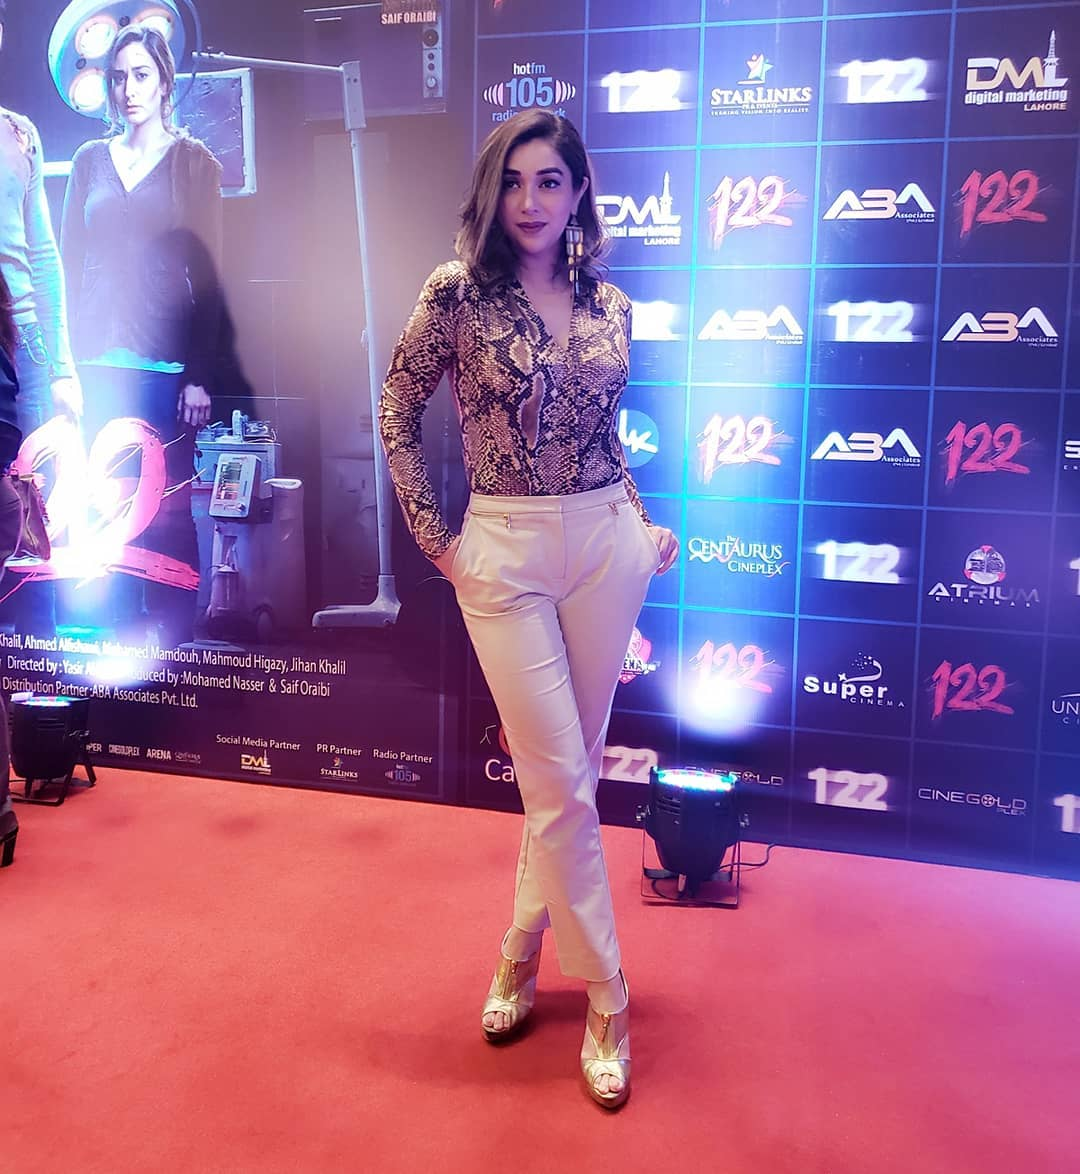 Celebrities at the Special Screening of Movie 'Avengers: End Game'